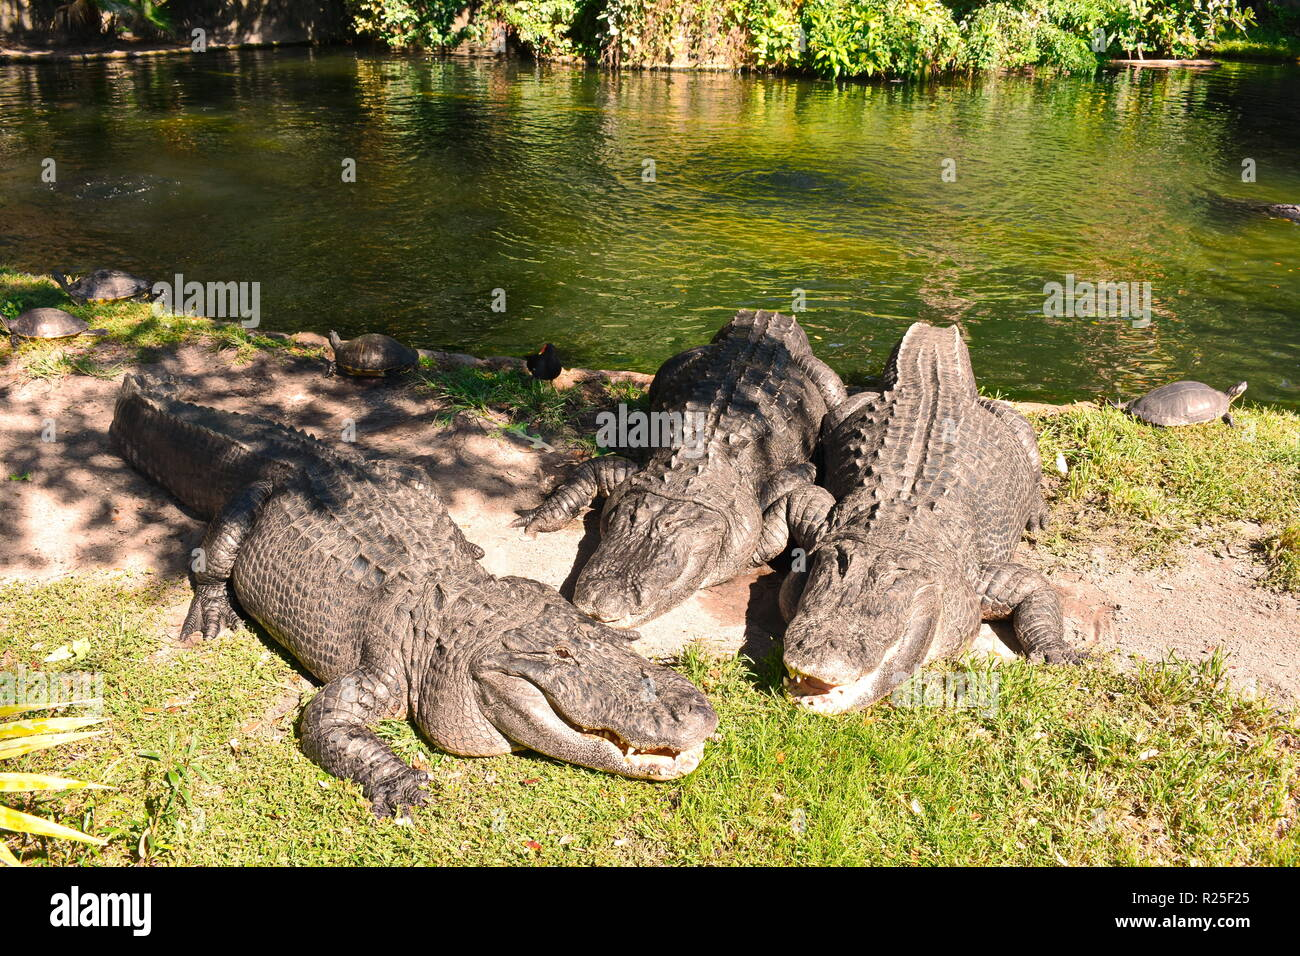 Tampa, Florida. October 25, 2018. Alligators relaxing on the side of a lagoon at Bush Gardens Tampa Bay. - Stock Image